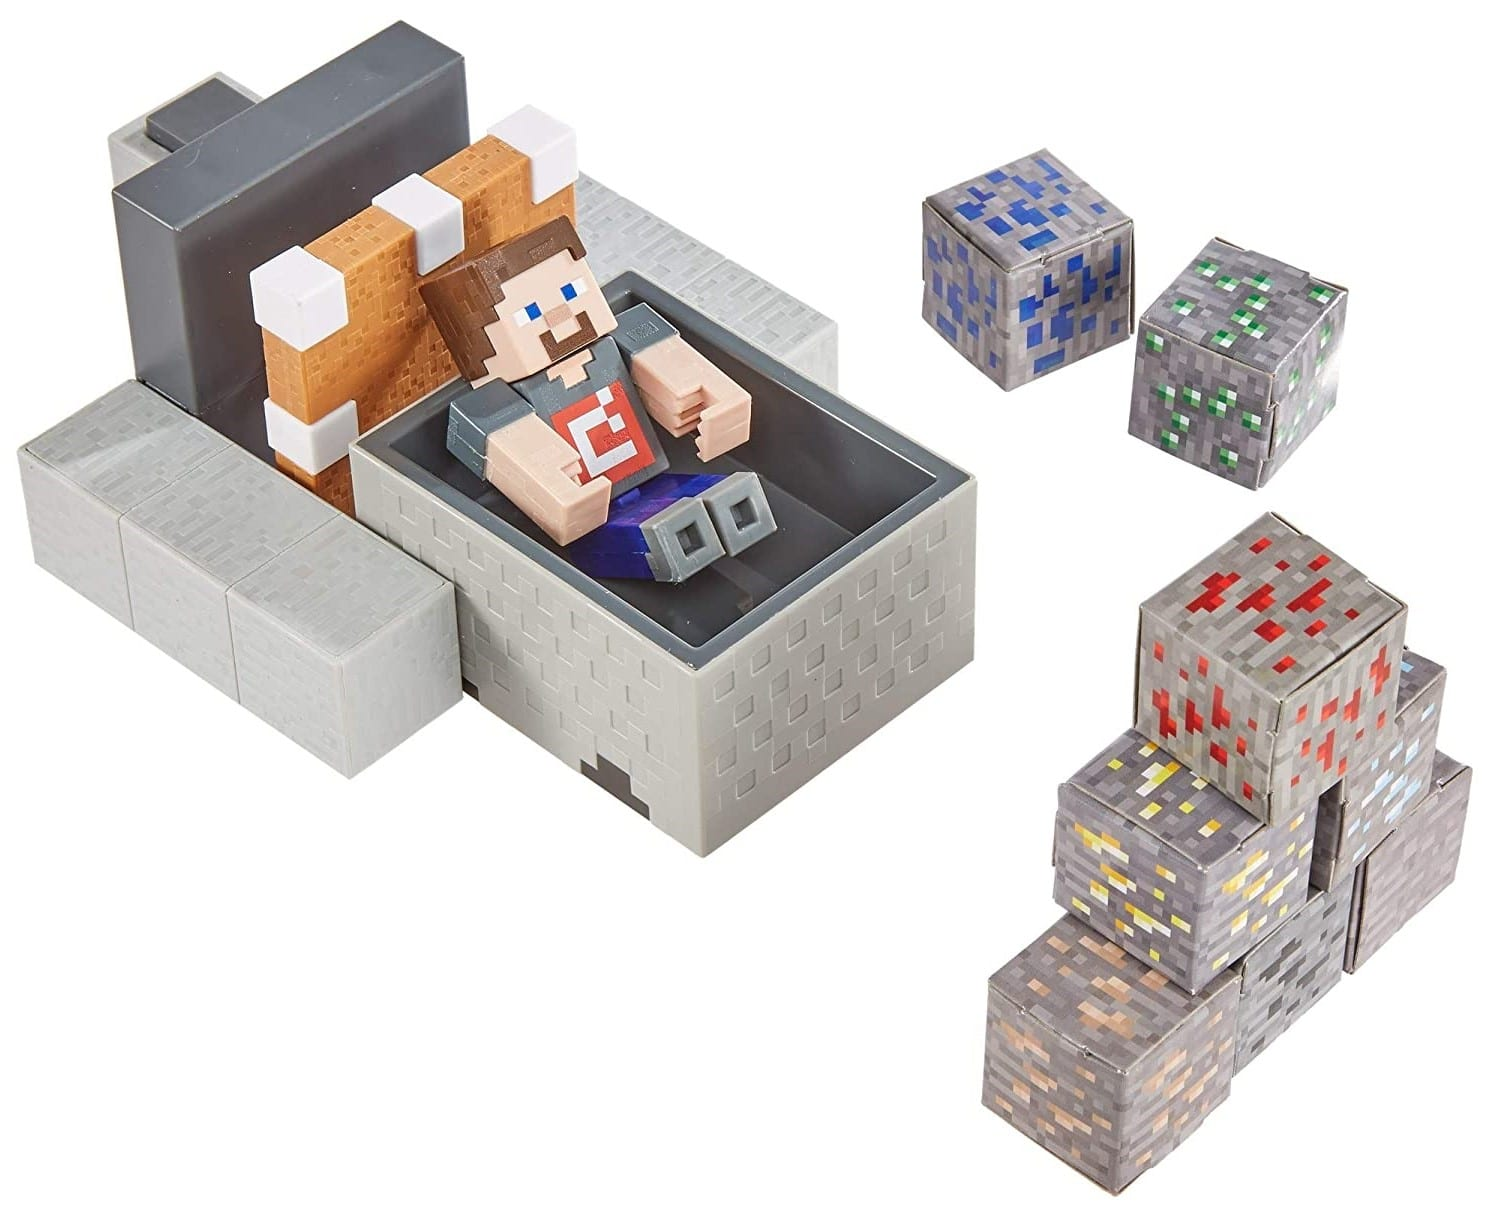 Minecraft Minecart Mayhem Playset brings the game's off-the-rails fun into the real world 13